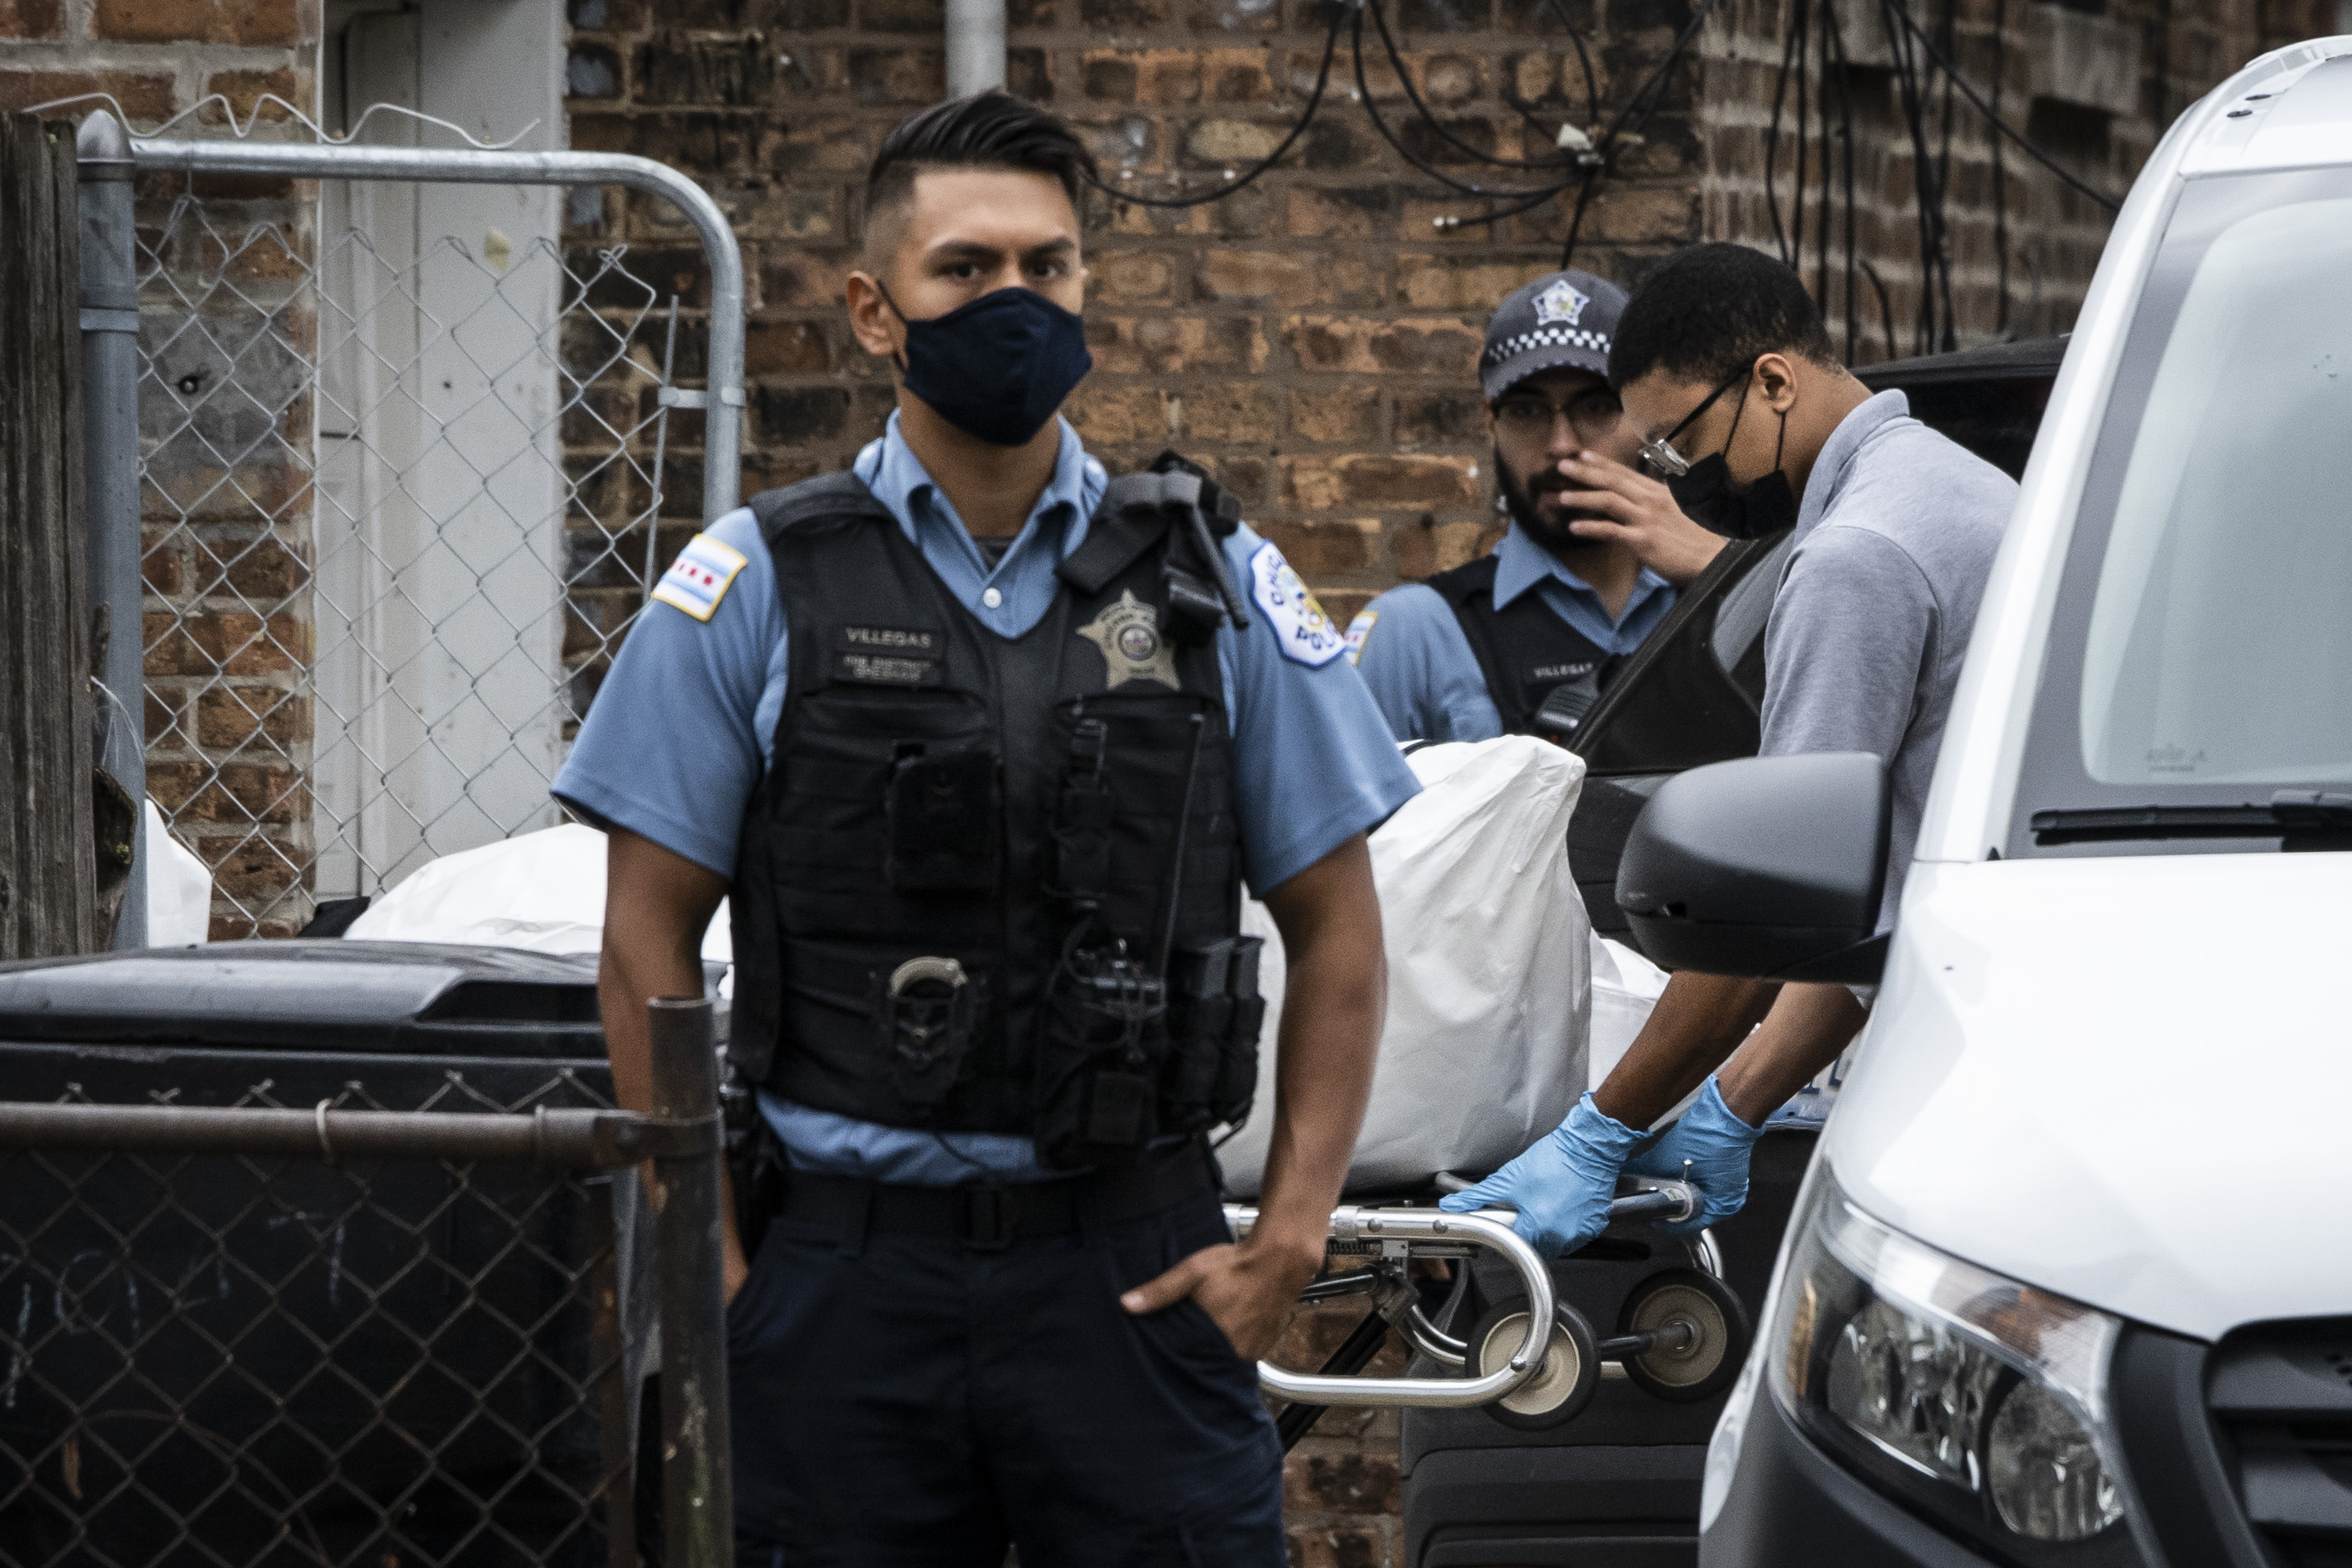 A crew removes a body from an apartment in the 7700 block of South Carpenter Street after a Chicago police officer shot and killed a man while answering a call of a domestic disturbance in the Gresham building on the South Side, Monday morning, Oct. 4, 2021.